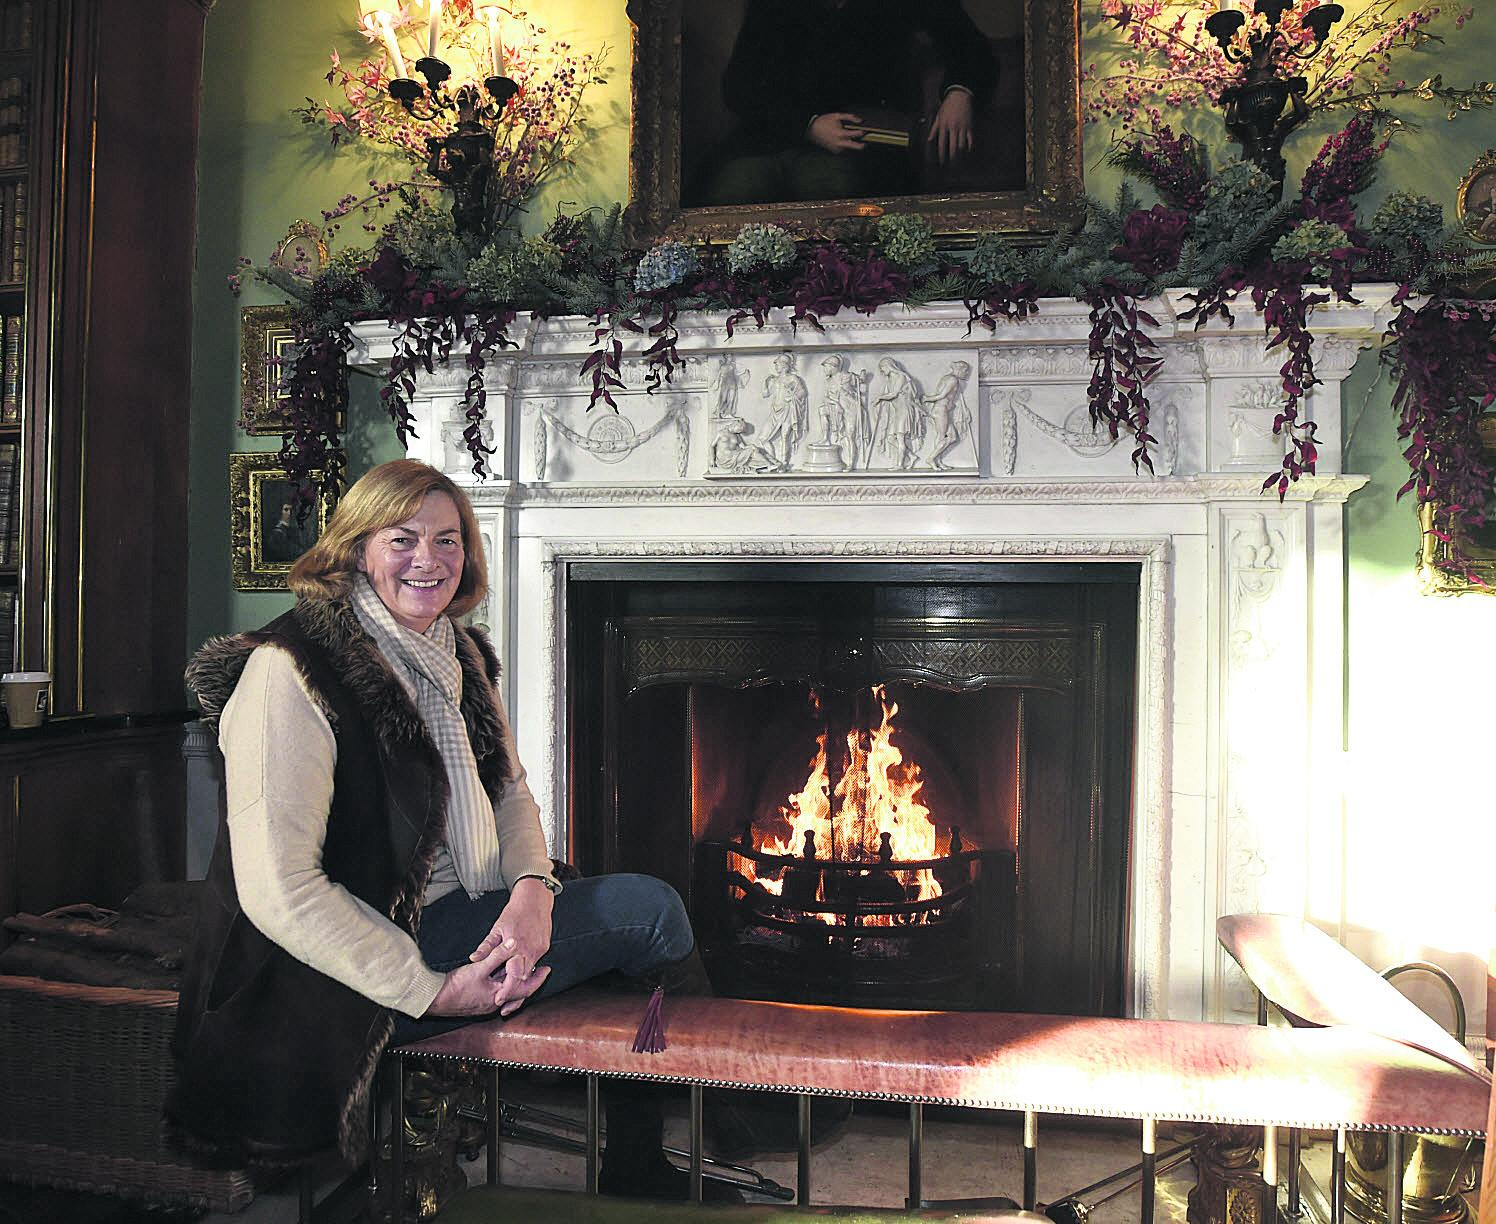 Lady Lansdowne next to the Christmas fireplace at Bowood House, which is hosting a festive fair